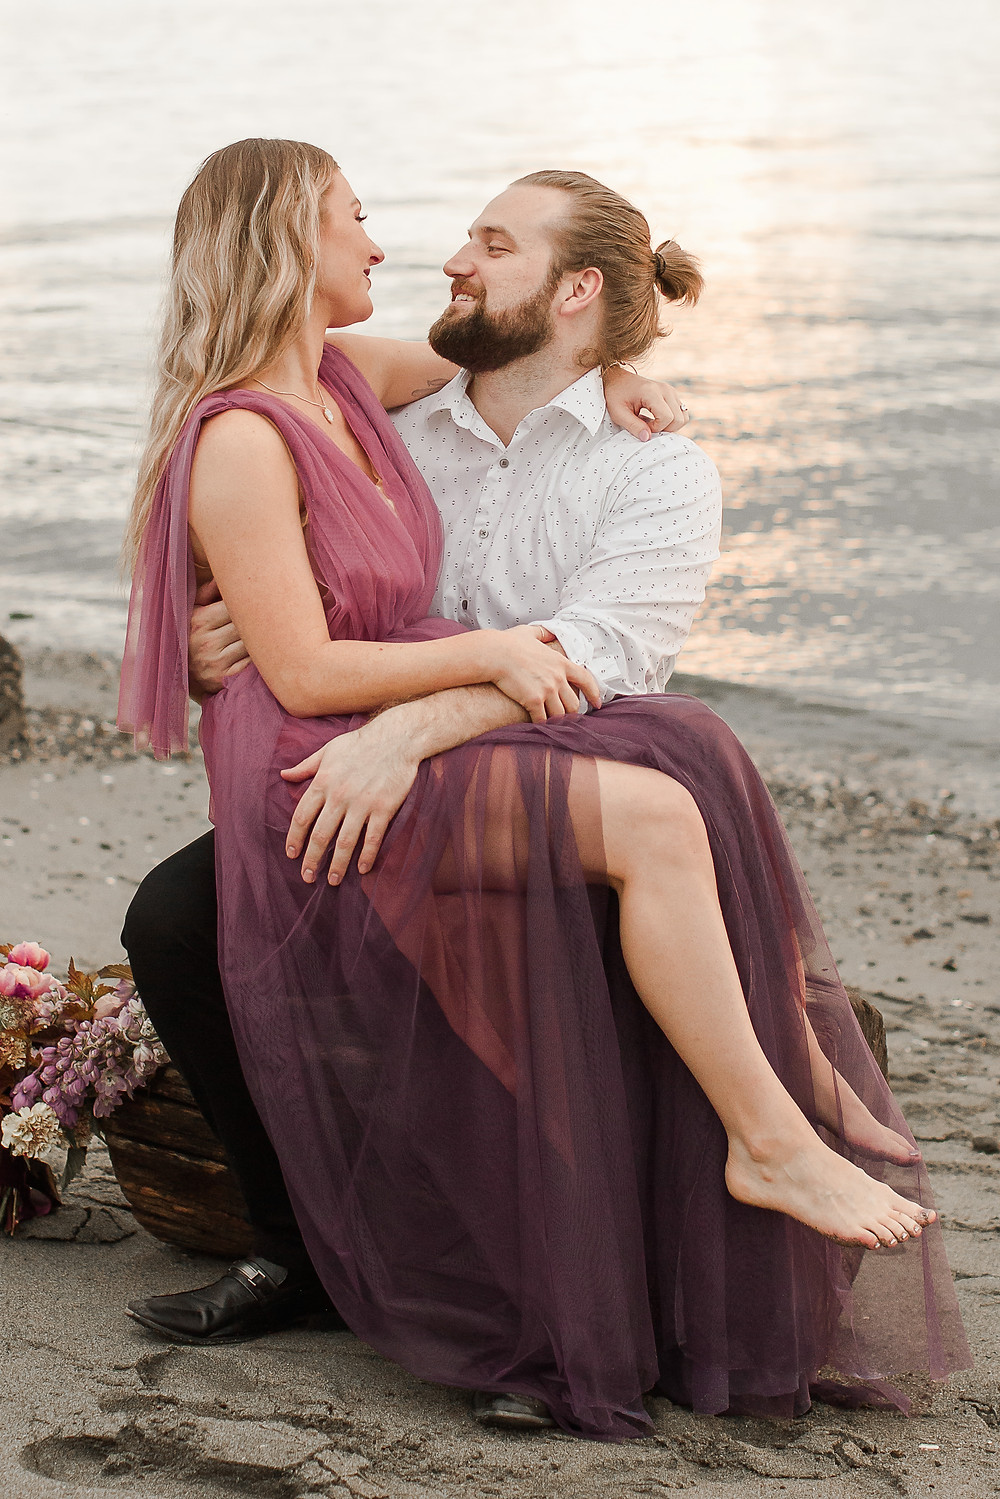 Seattle Beach Elopement at Discovery Park Sitting on a Rock